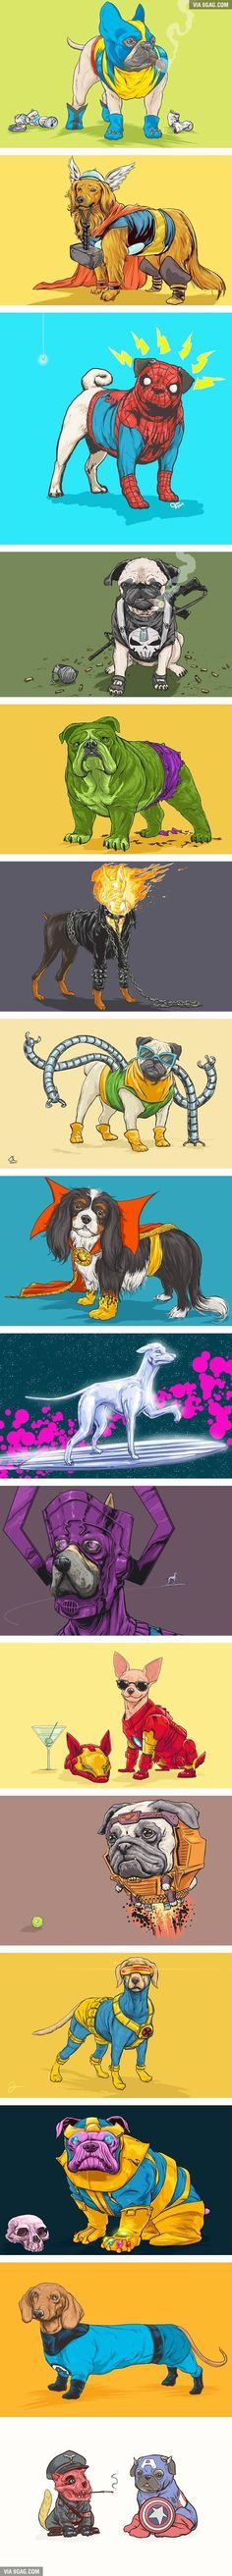 """Dogs of the Marvel Universe ! I love """" Iron Dog """" and """" Spider Dog """" #Dog #Marvel #Ironman - Visit now to grab yourself a super hero shirt today at 40% off!"""